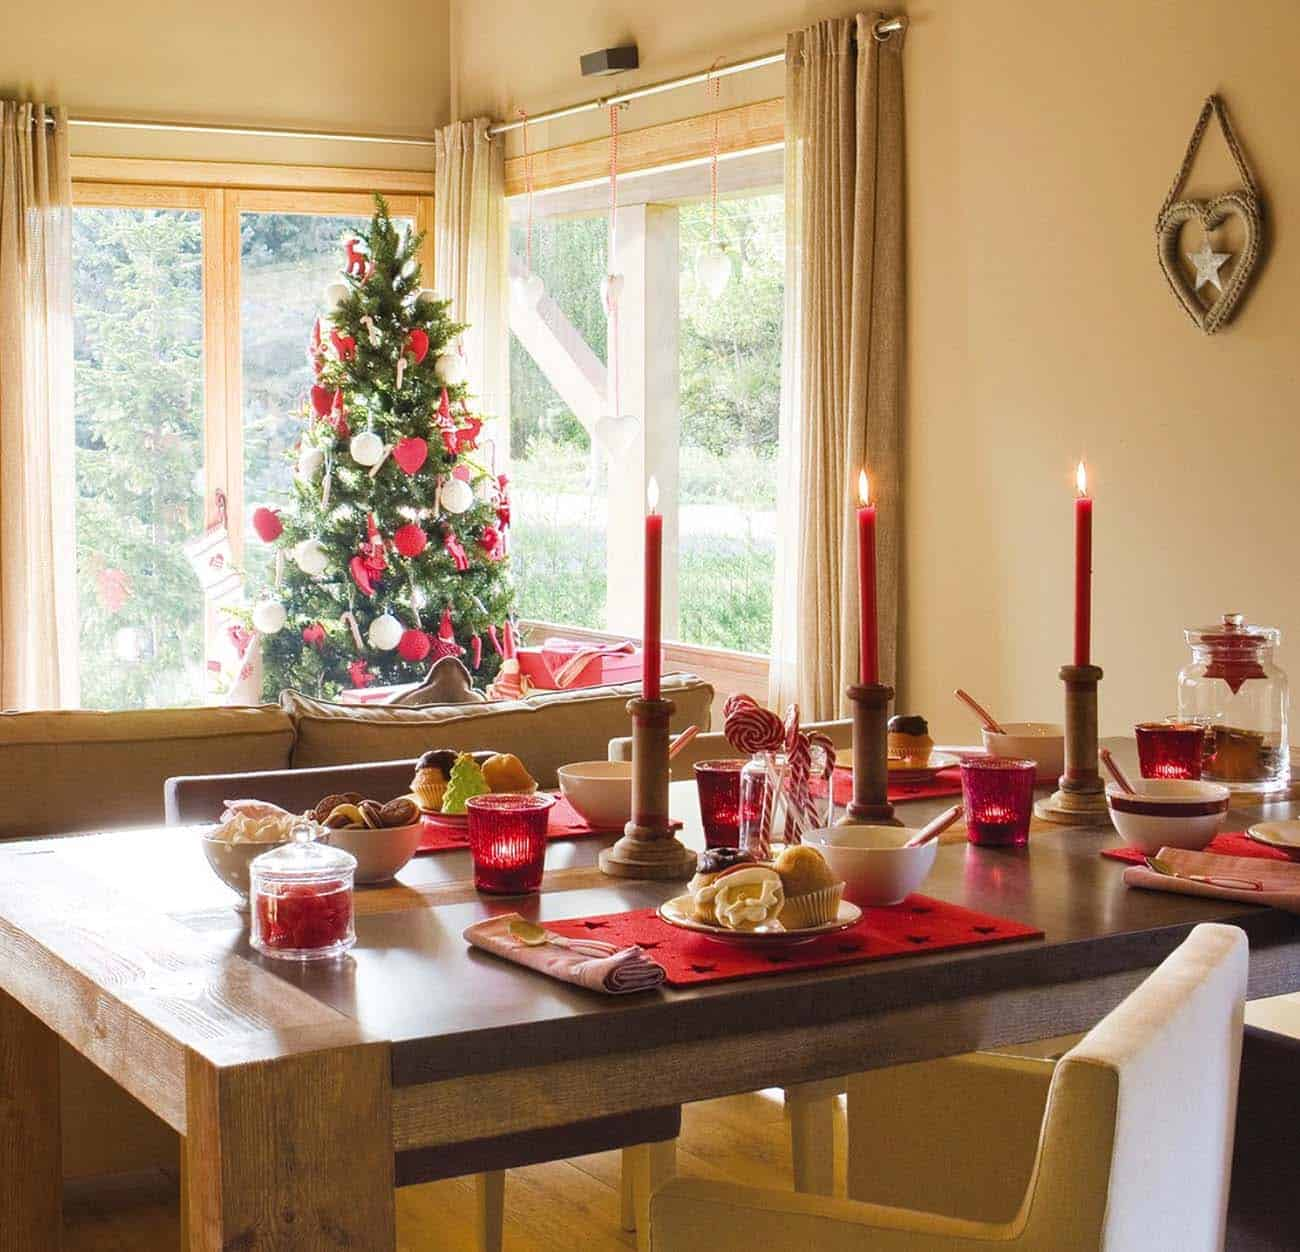 Nordic Style Christmas Decorated Home-13-1 Kindesign